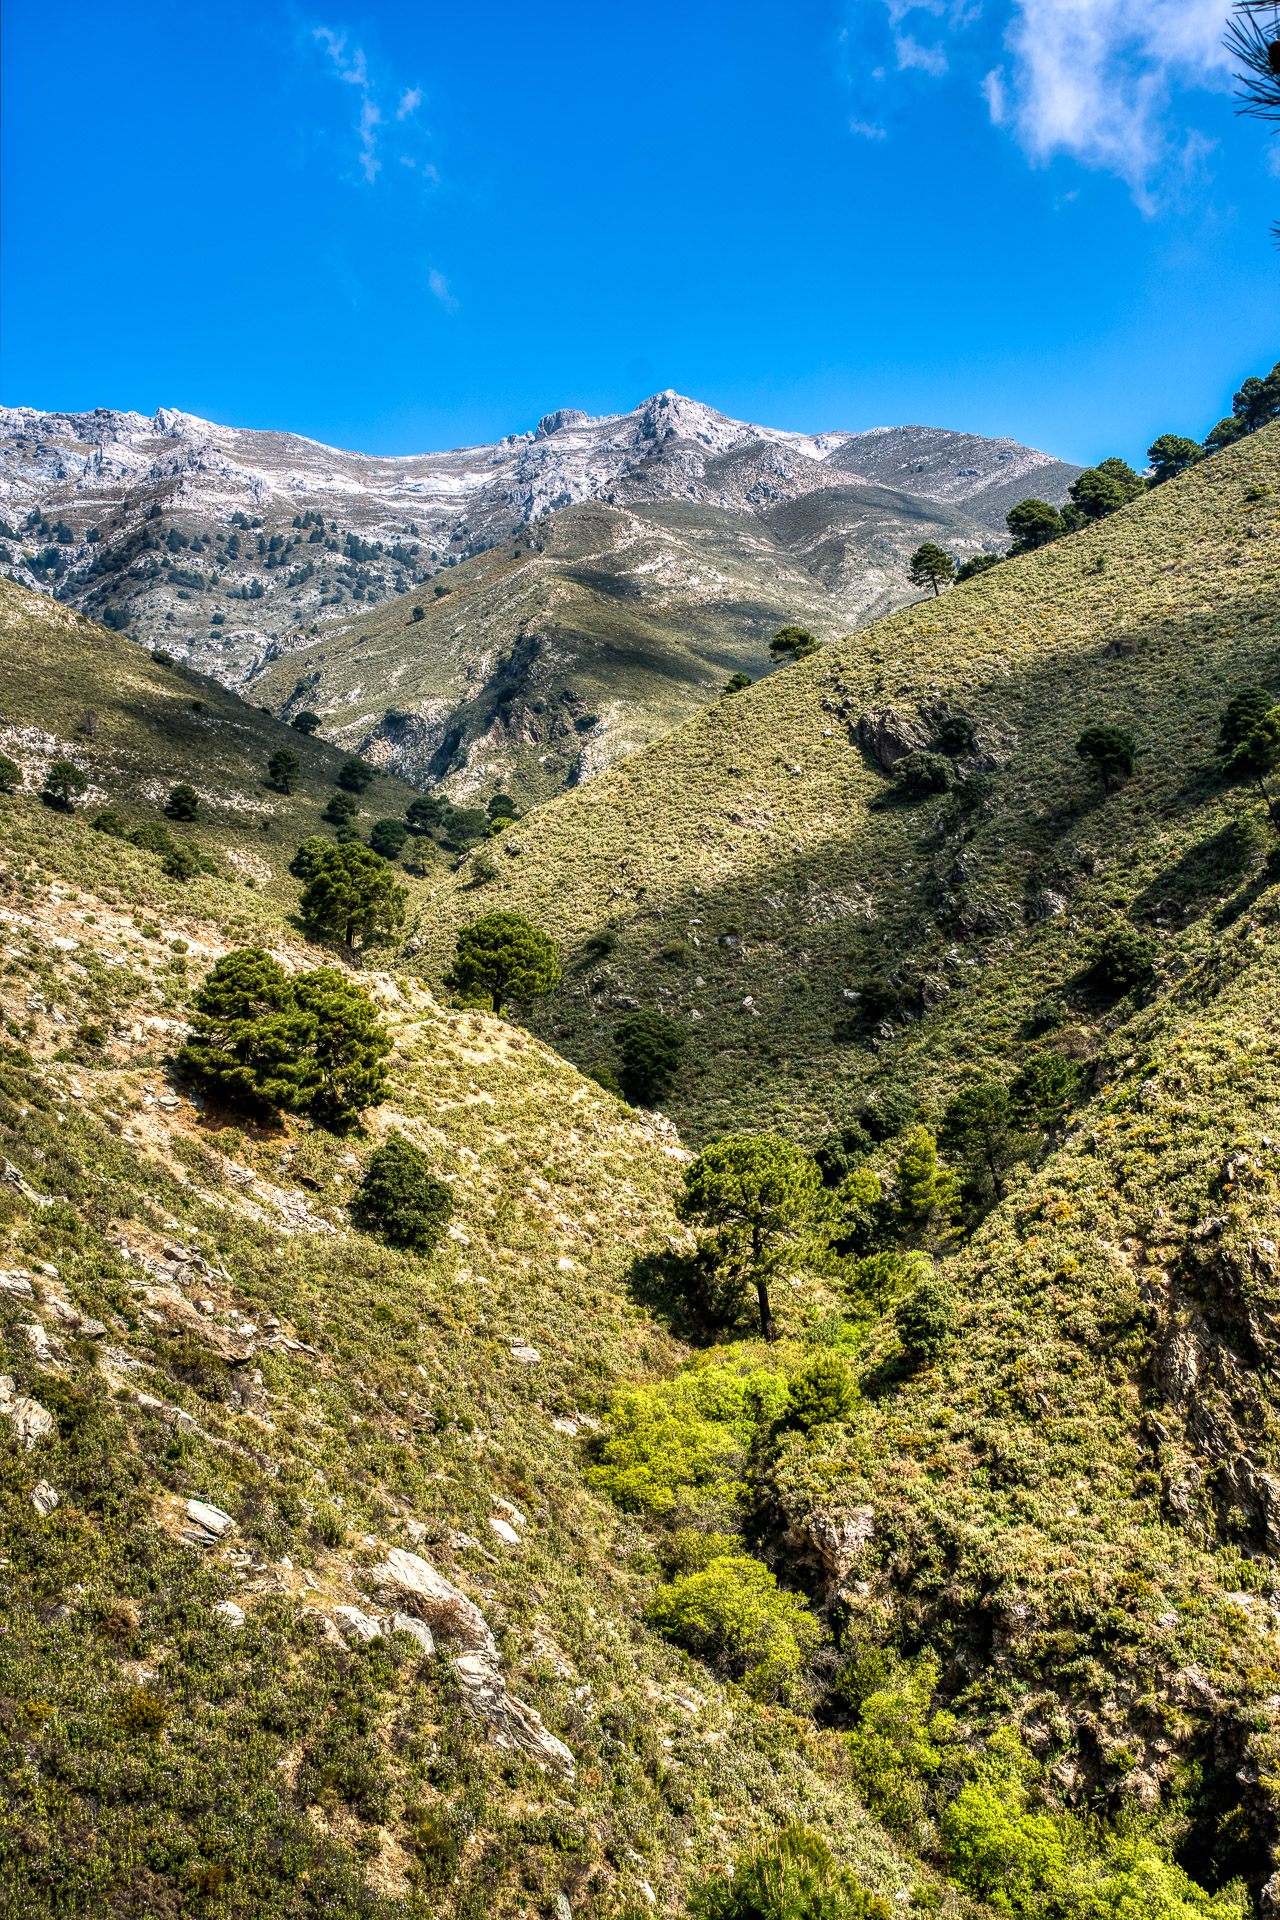 Springtime in the scenic Mountains of Andalucia, Spain.  Tags: Springtime, Andalucia, Spain, Malaga, mountains, landscape, scenic.